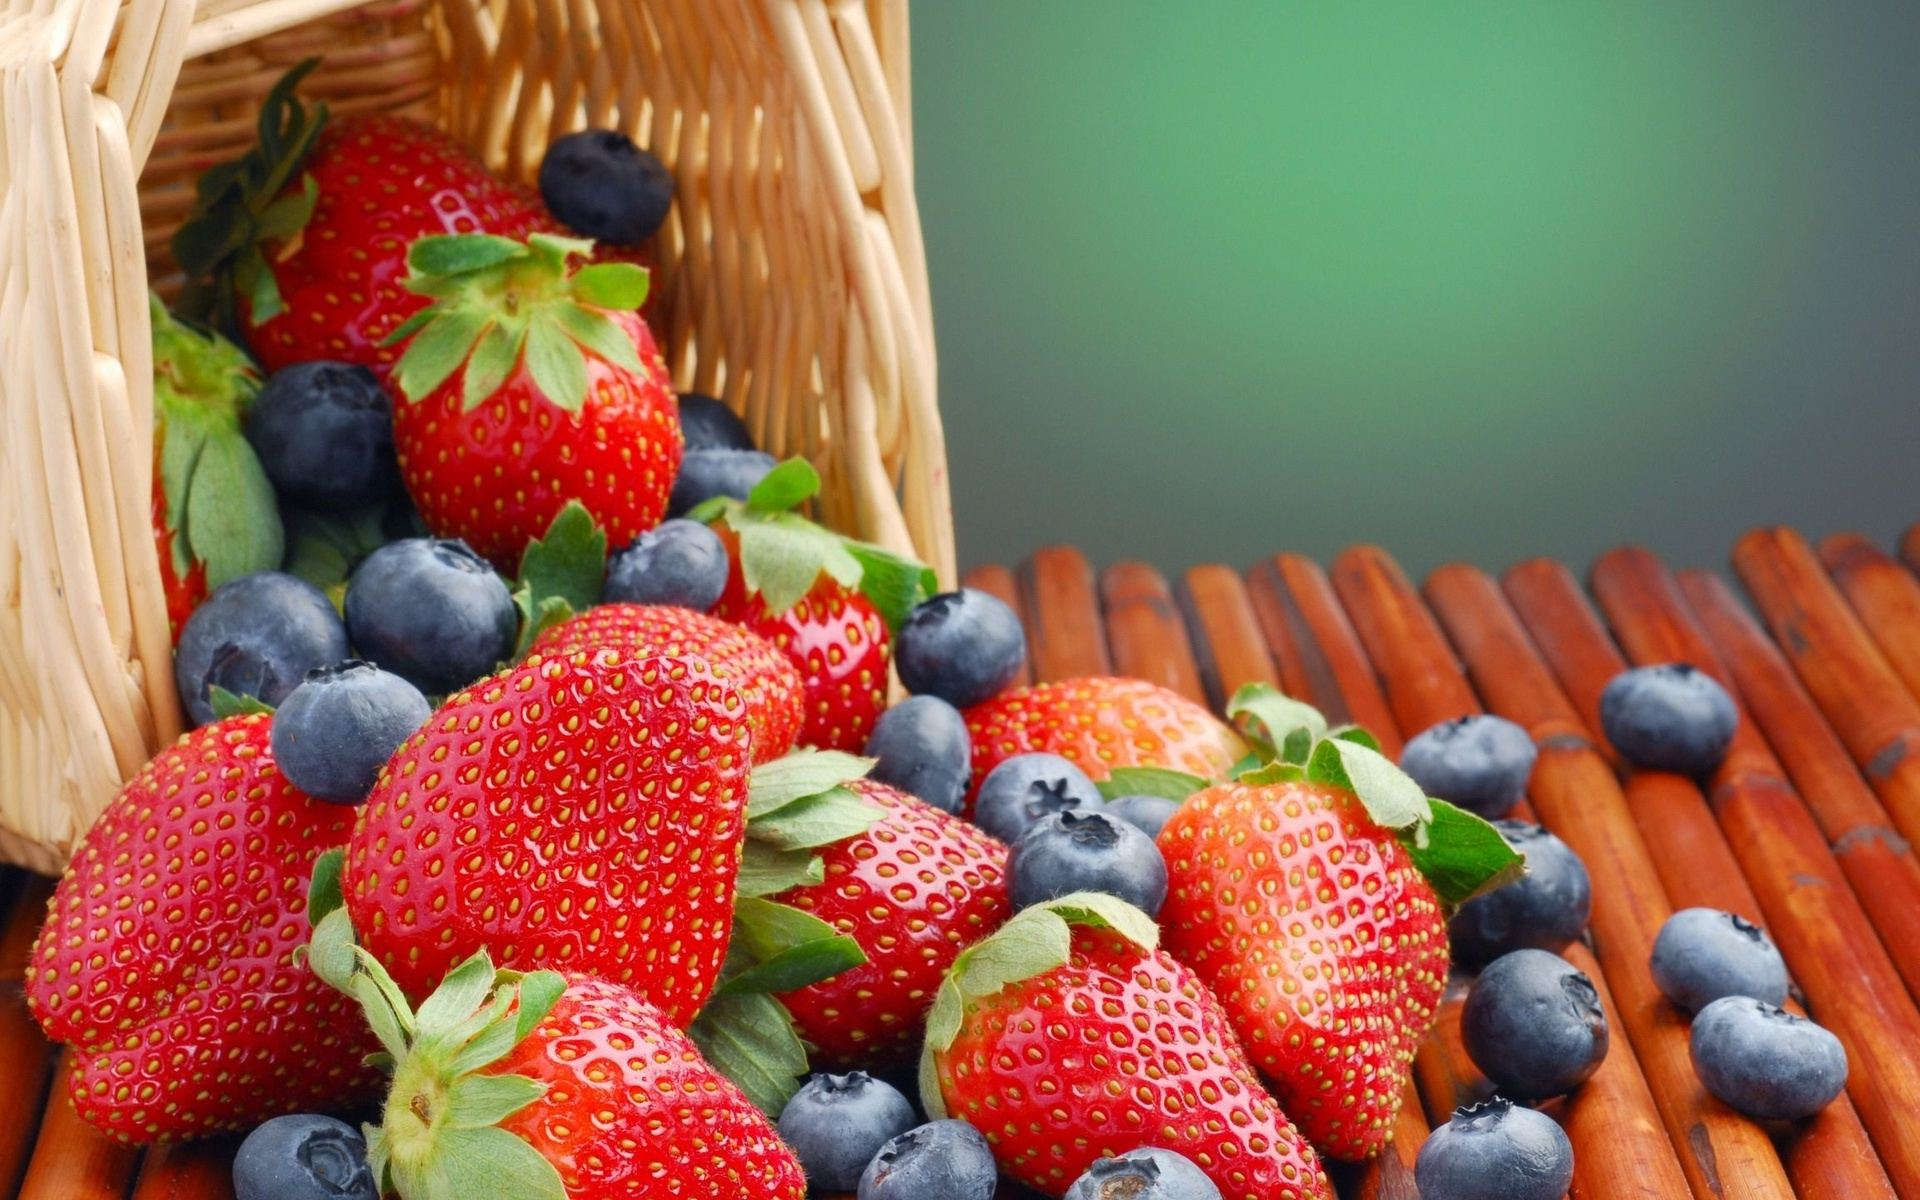 Berry Wallpaper Posted By Michelle Sellers